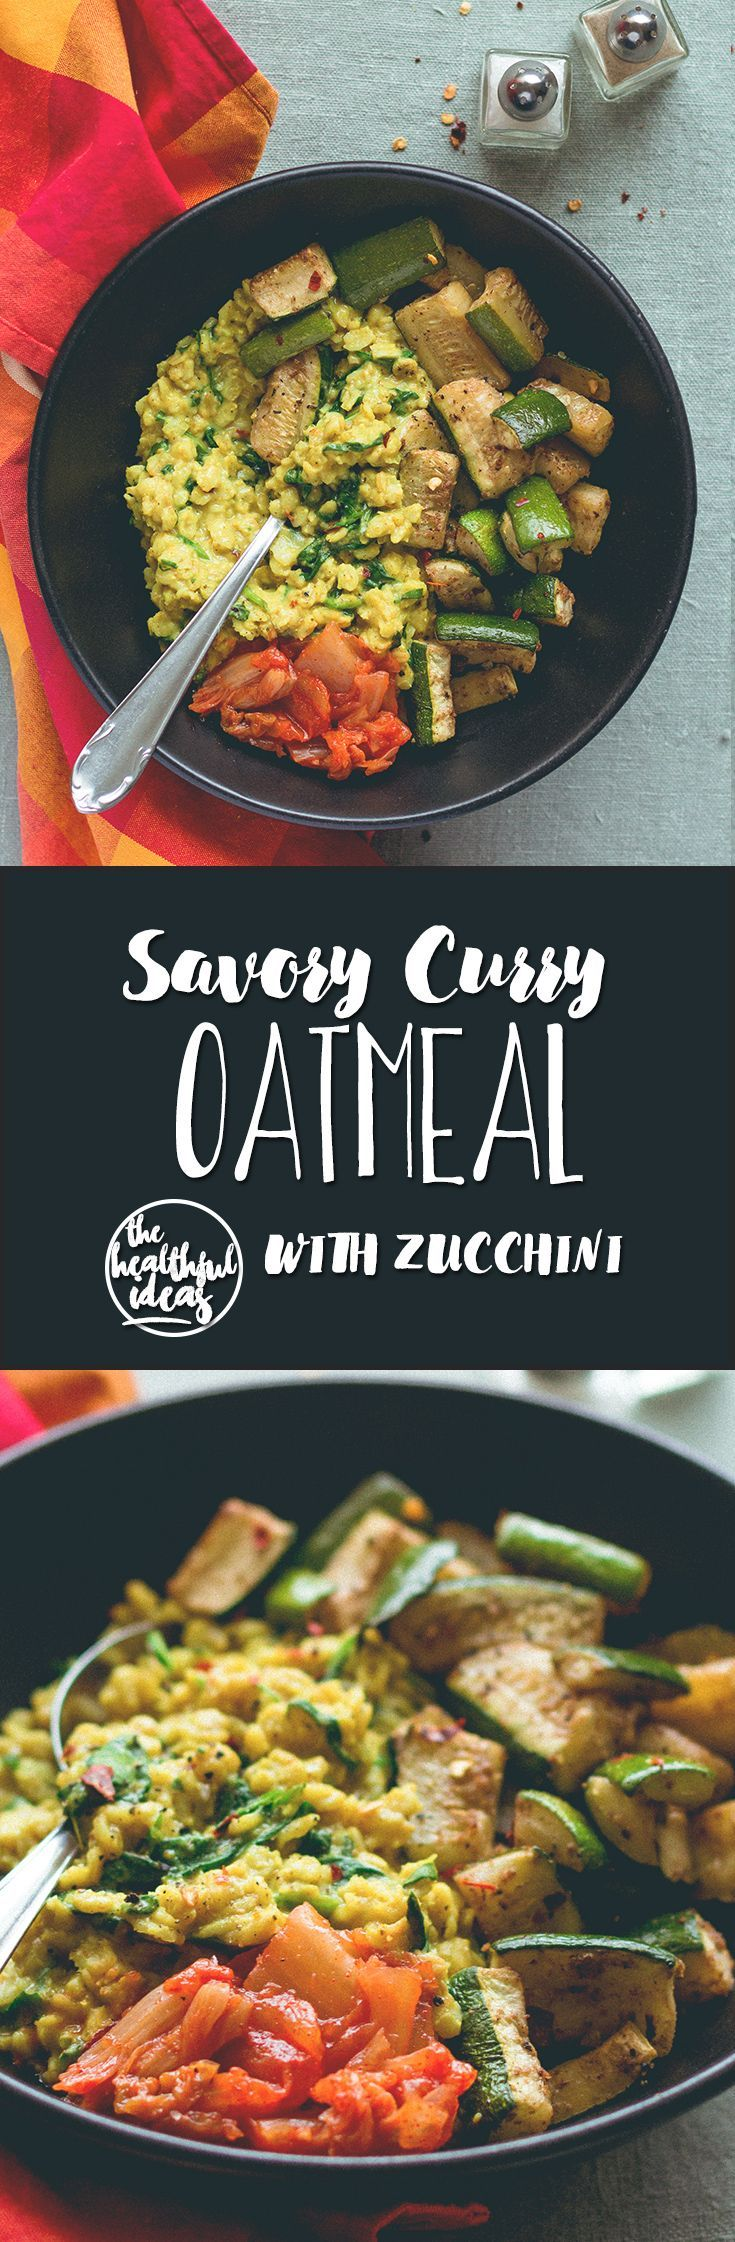 Curry Oatmeal with Roasted Zucchini - savory take on regular oatmeal. SO delicious! Creamy, savory, hearty, comforting, and really satisfying. | http://thehealthfulideas.com